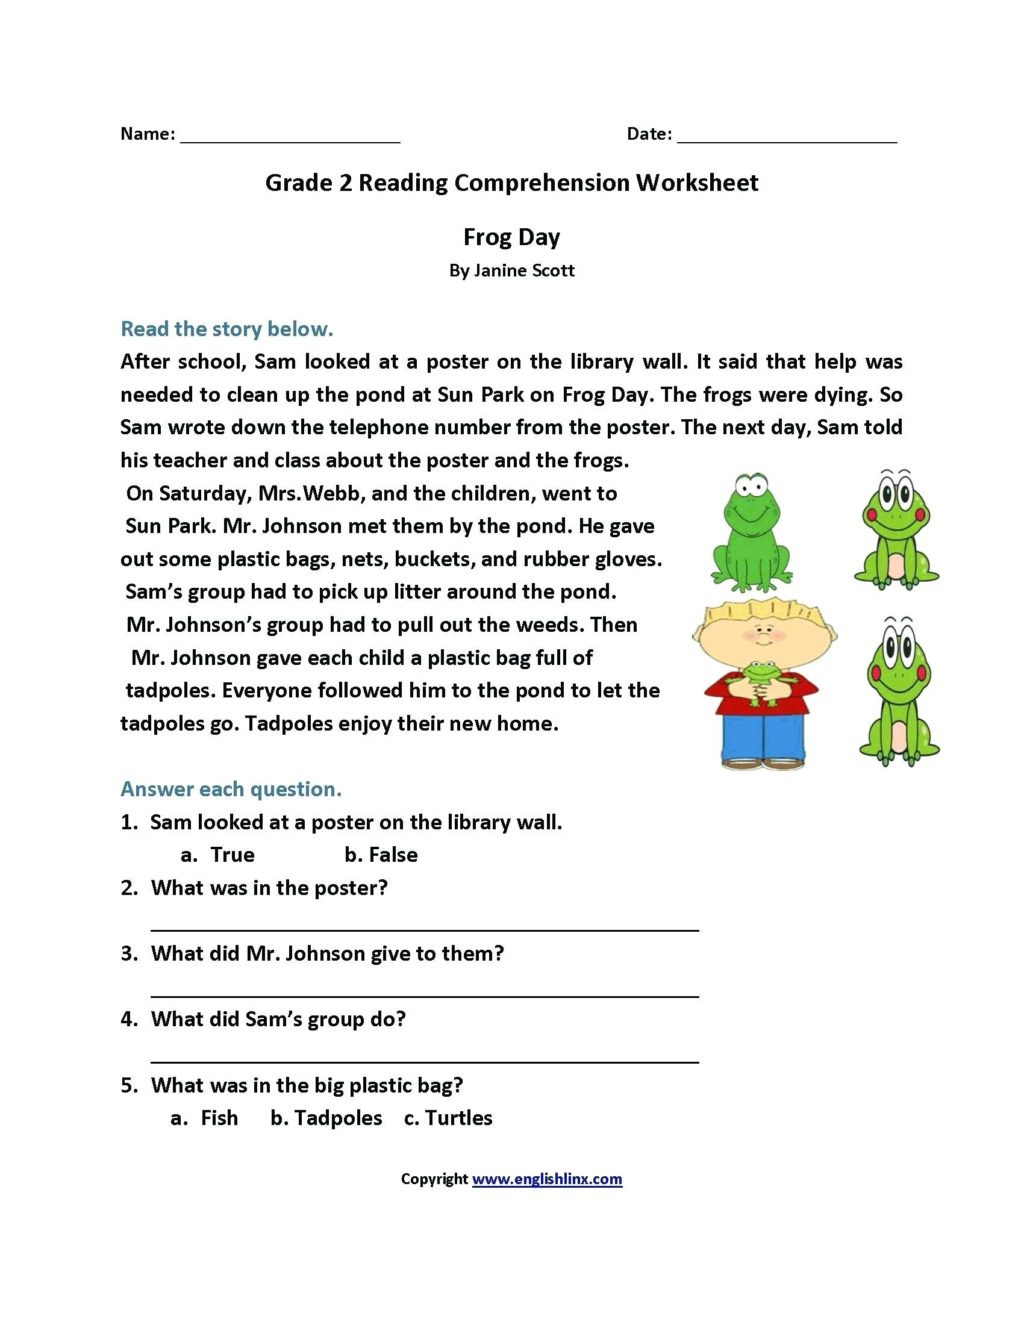 Grade 2 Reading Comprehension Worksheets Worksheet Amazing Free Printable First Grade Reading